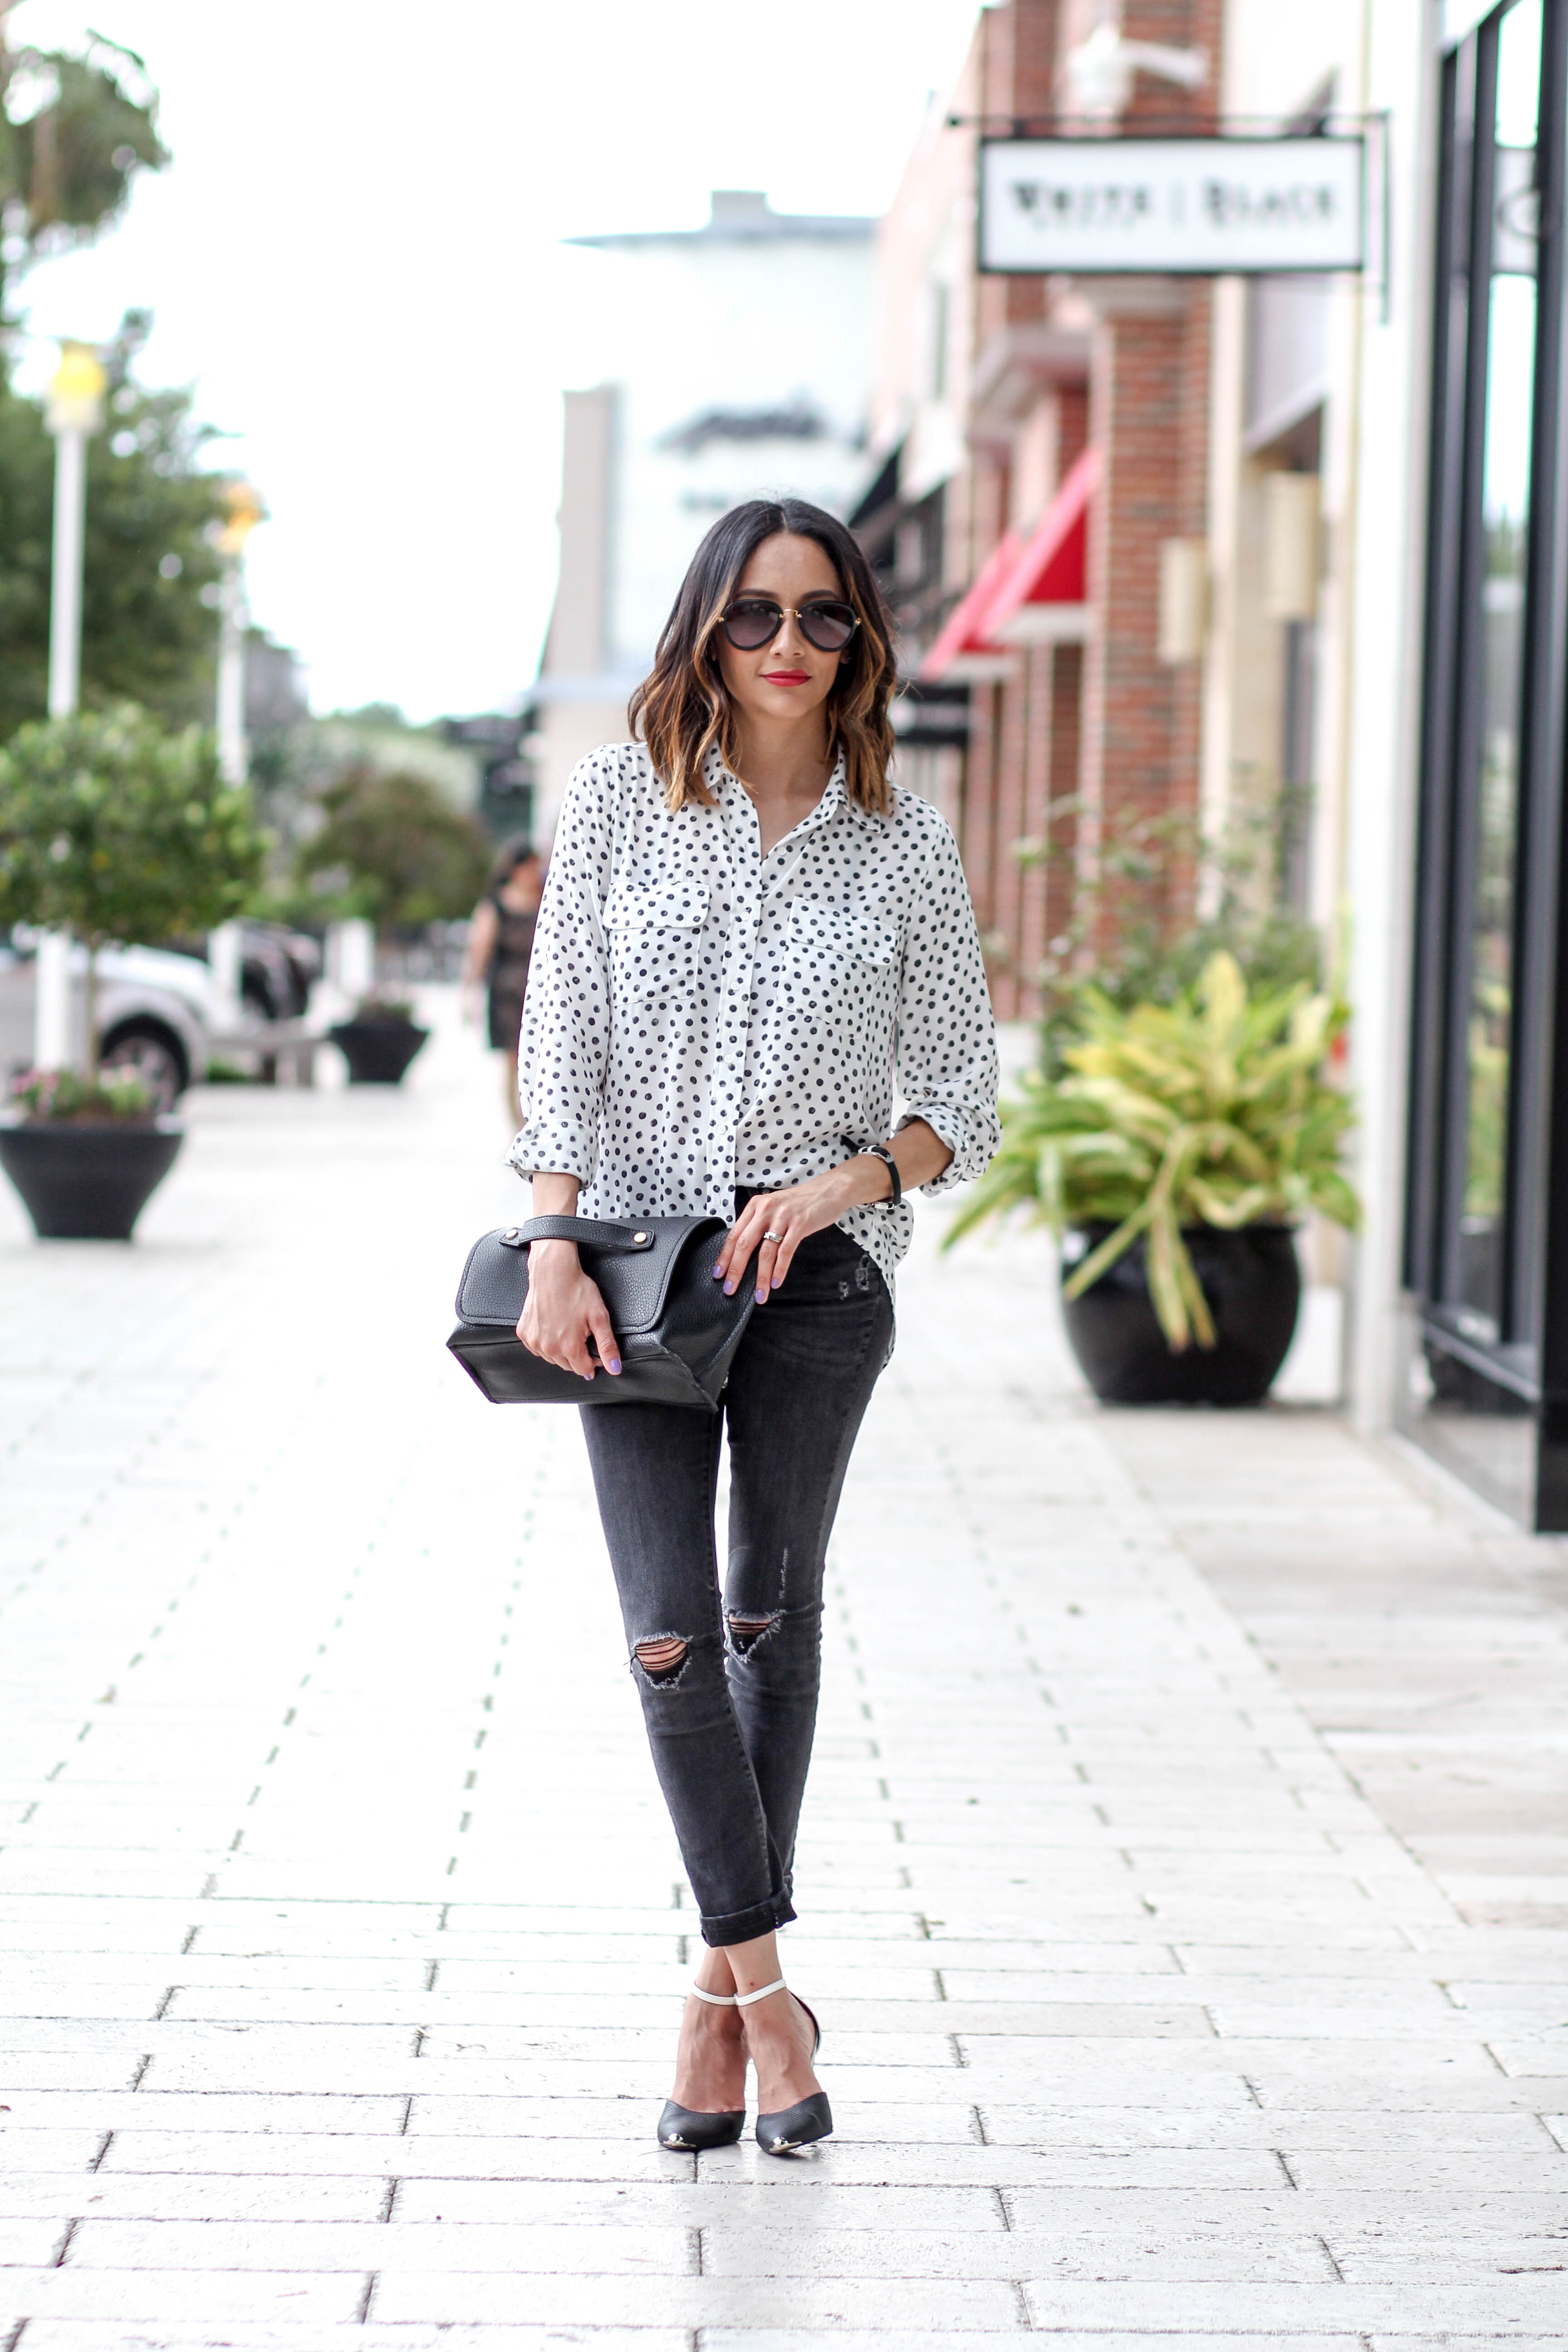 Polka Dotted Shirt | Black Skinny Jeans | Black and White Look